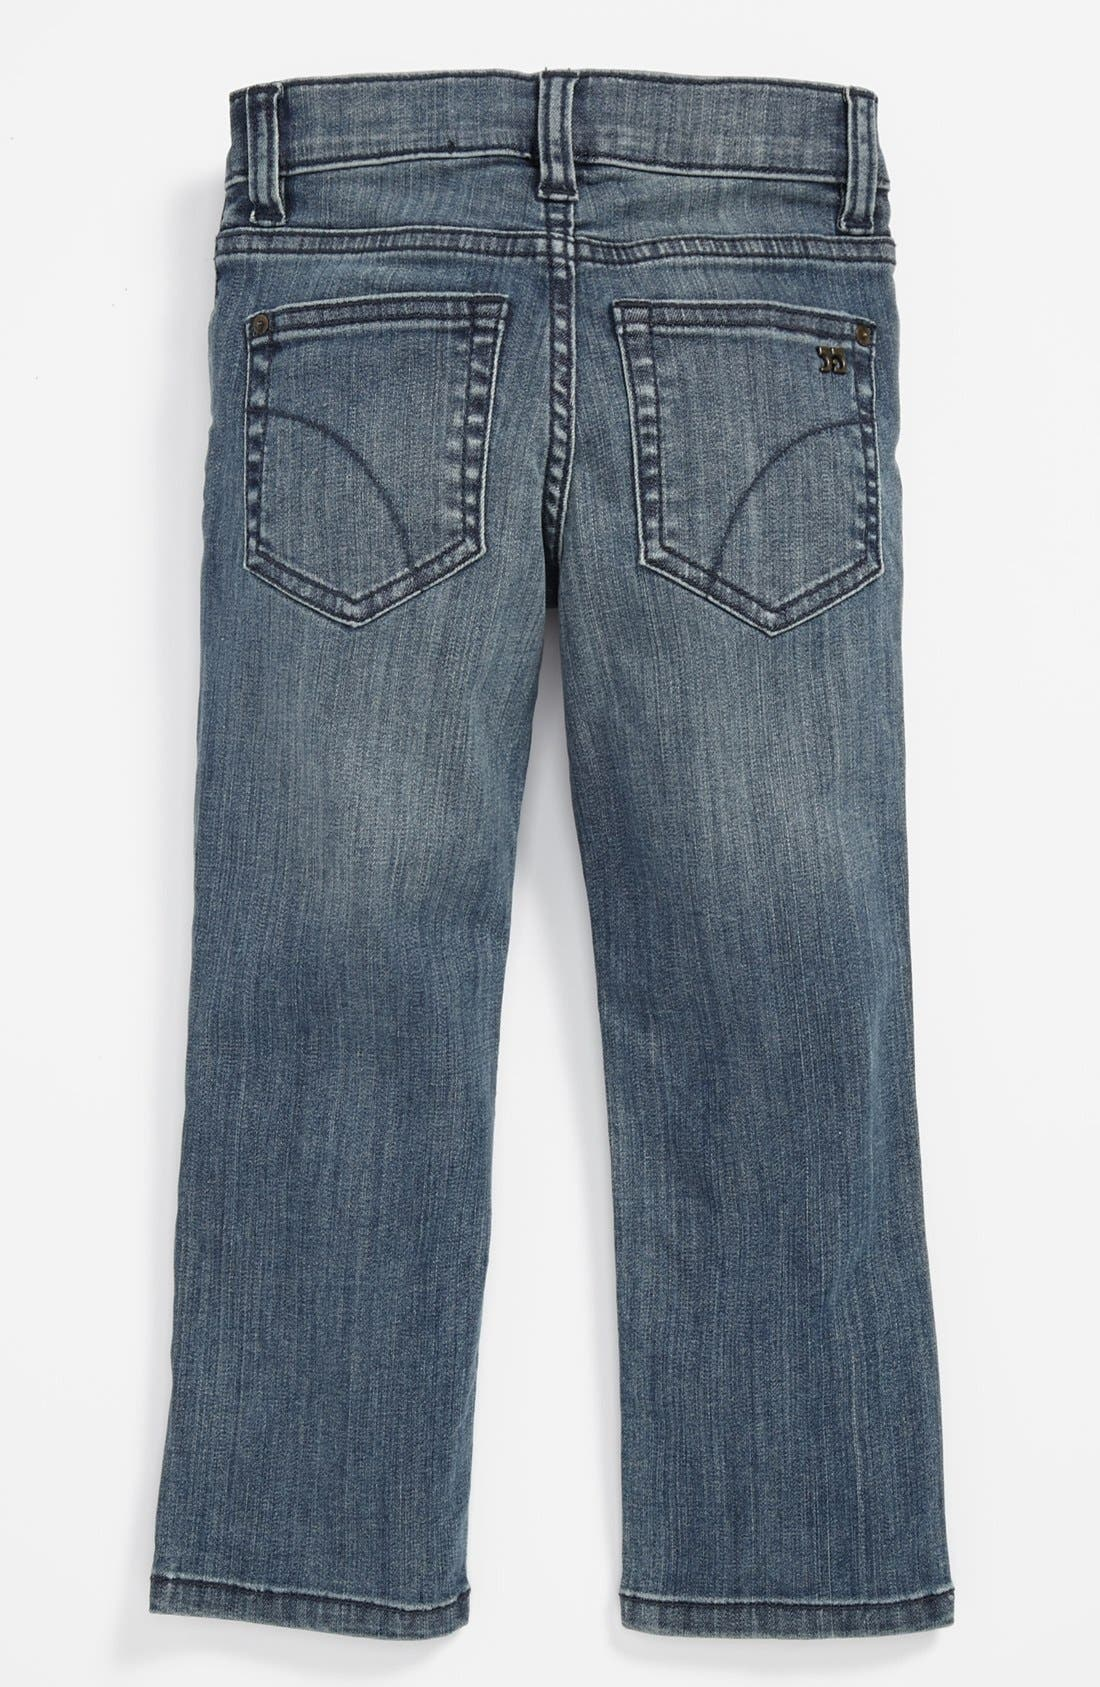 Main Image - Joe's 'Brixton' Straight Leg Jeans (Toddler Boys)